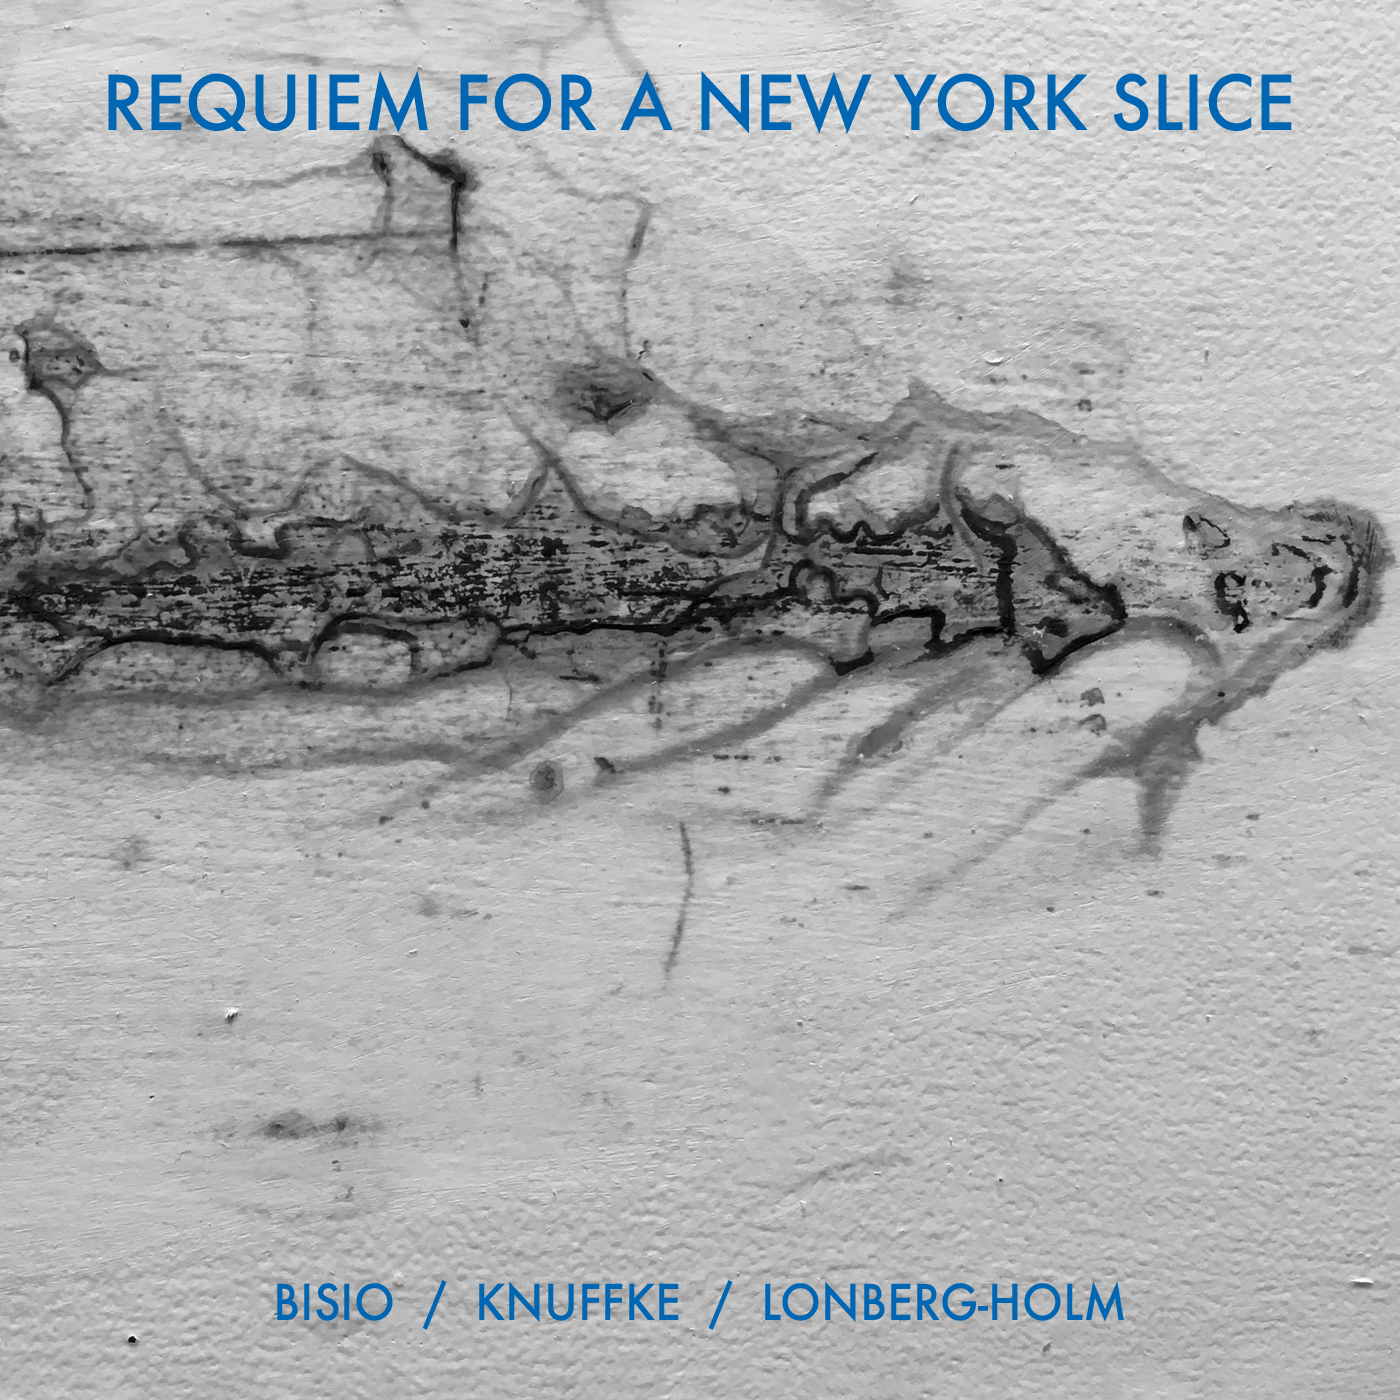 Requiem for a New York Slice by Michael Bisio / Kirk Knuffke / Fred Lonberg-Holm